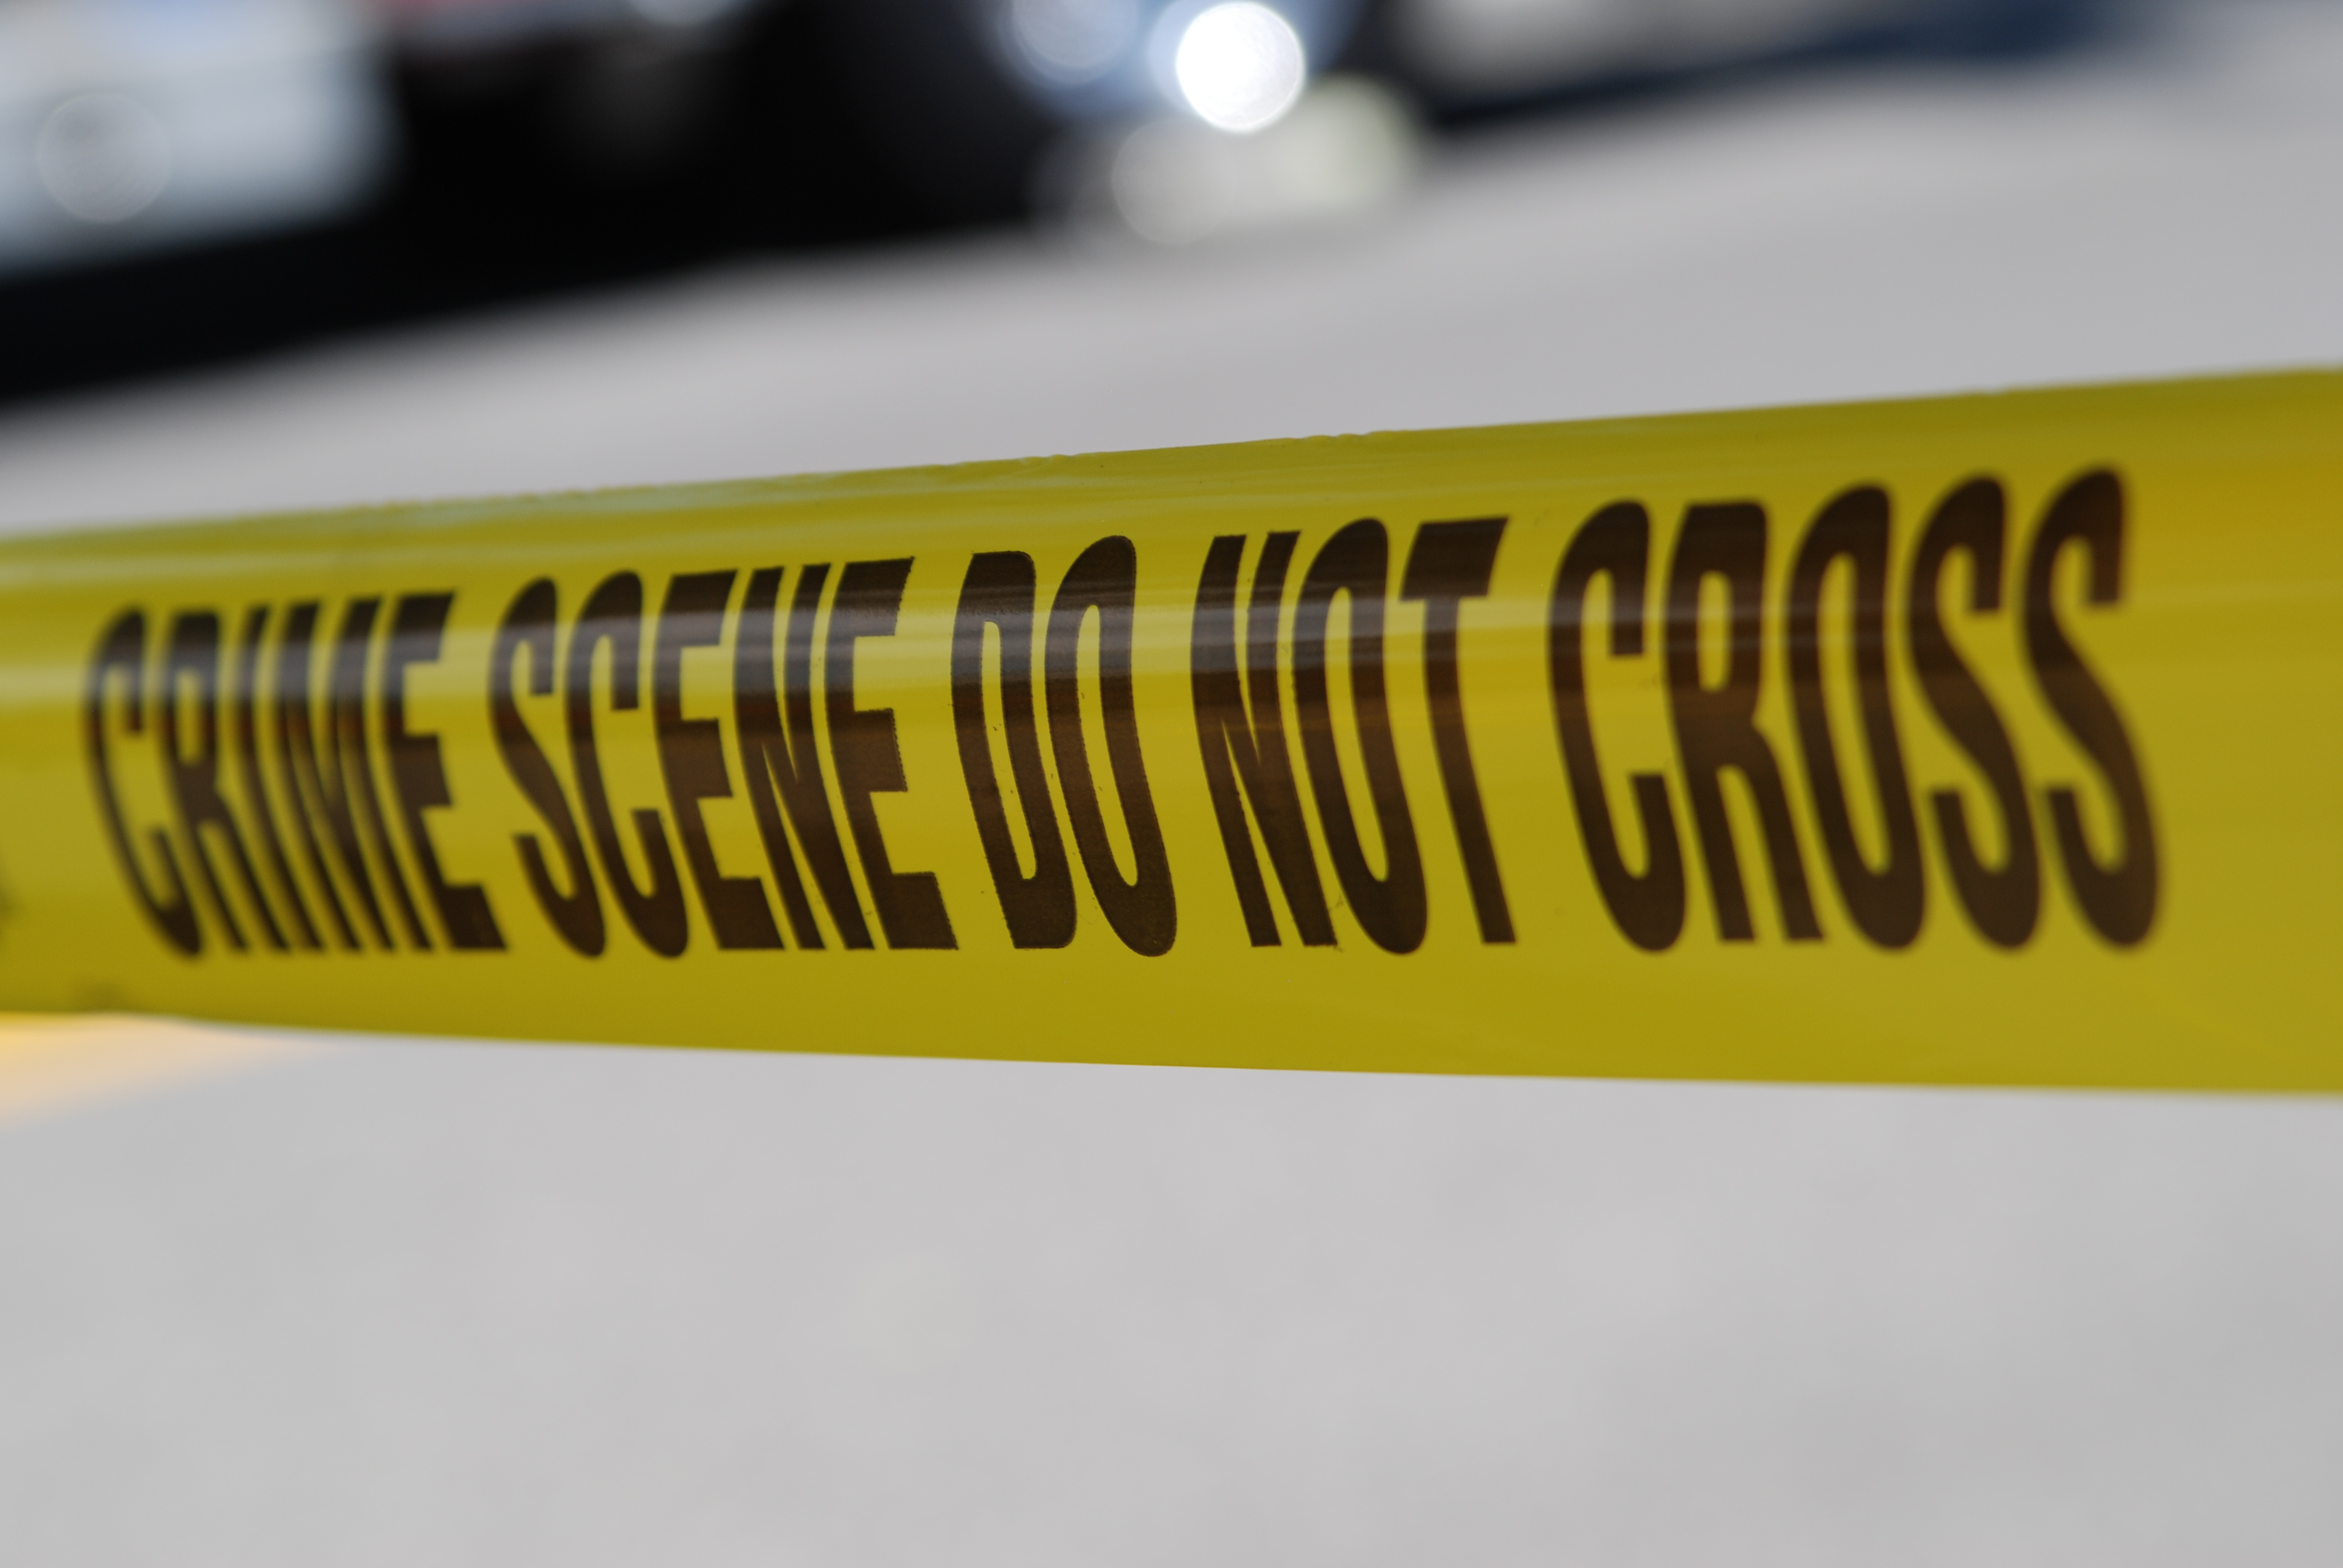 A white 77-year-old woman was robbed by two men posing as utility workers at 2 p.m. on Tuesday, July 21.